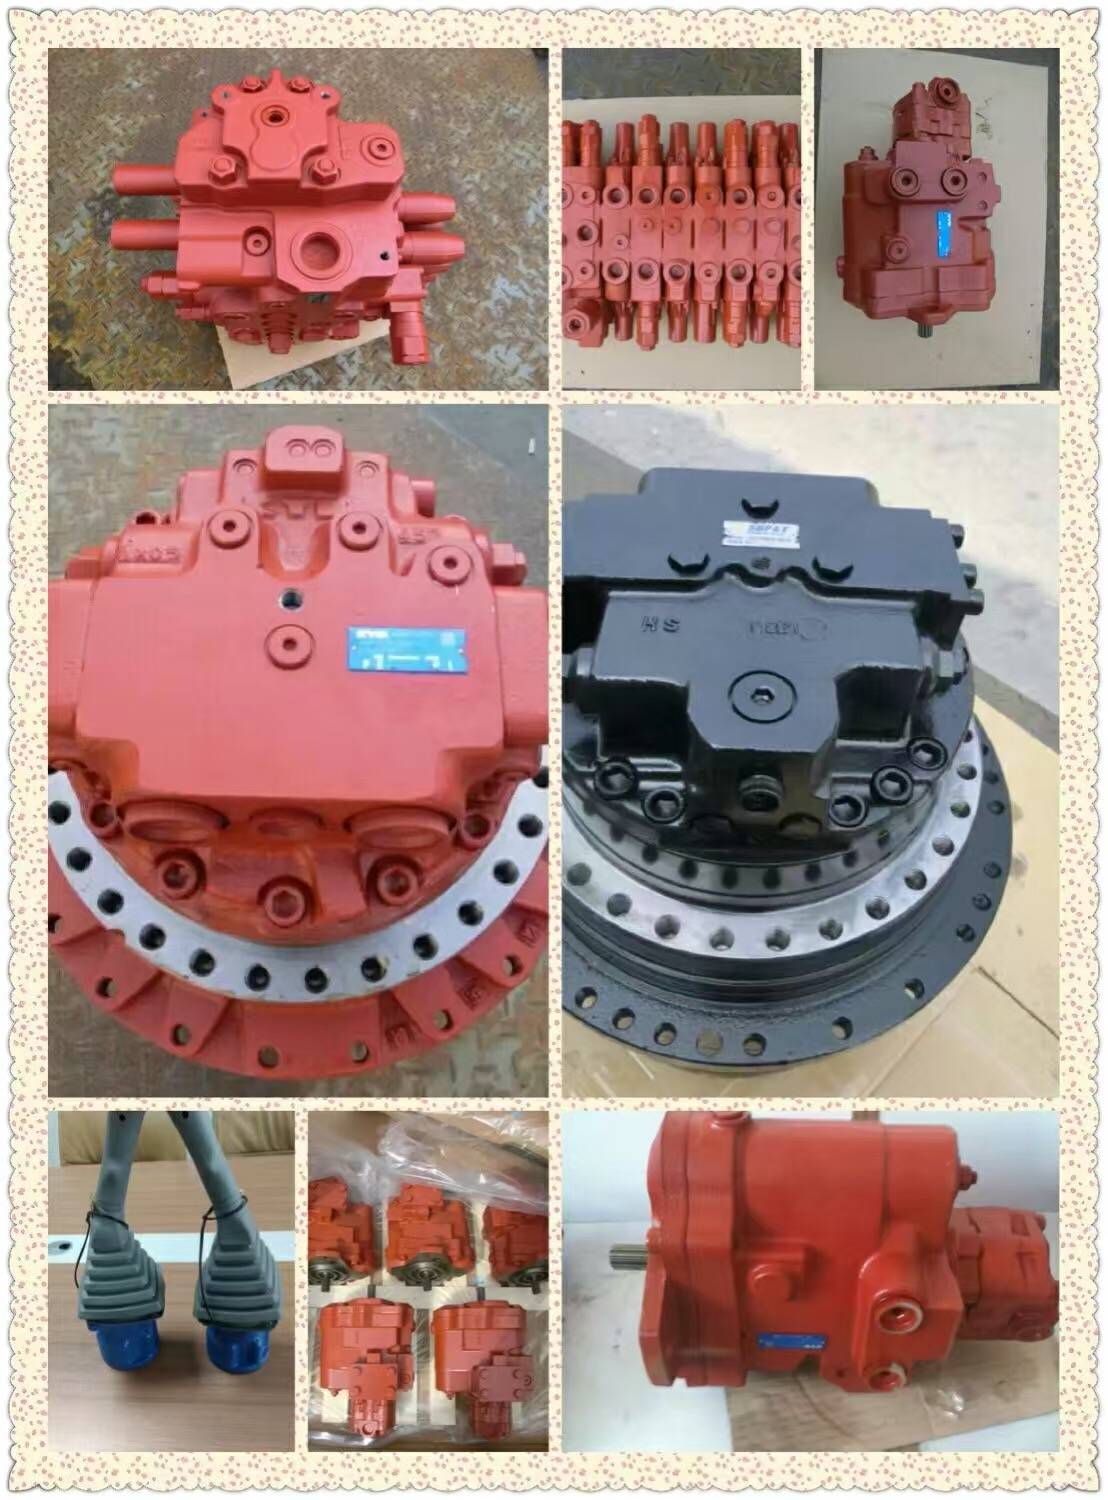 travel device (motor, reducer), swing device (motor, reducer), main control valve, remote control va